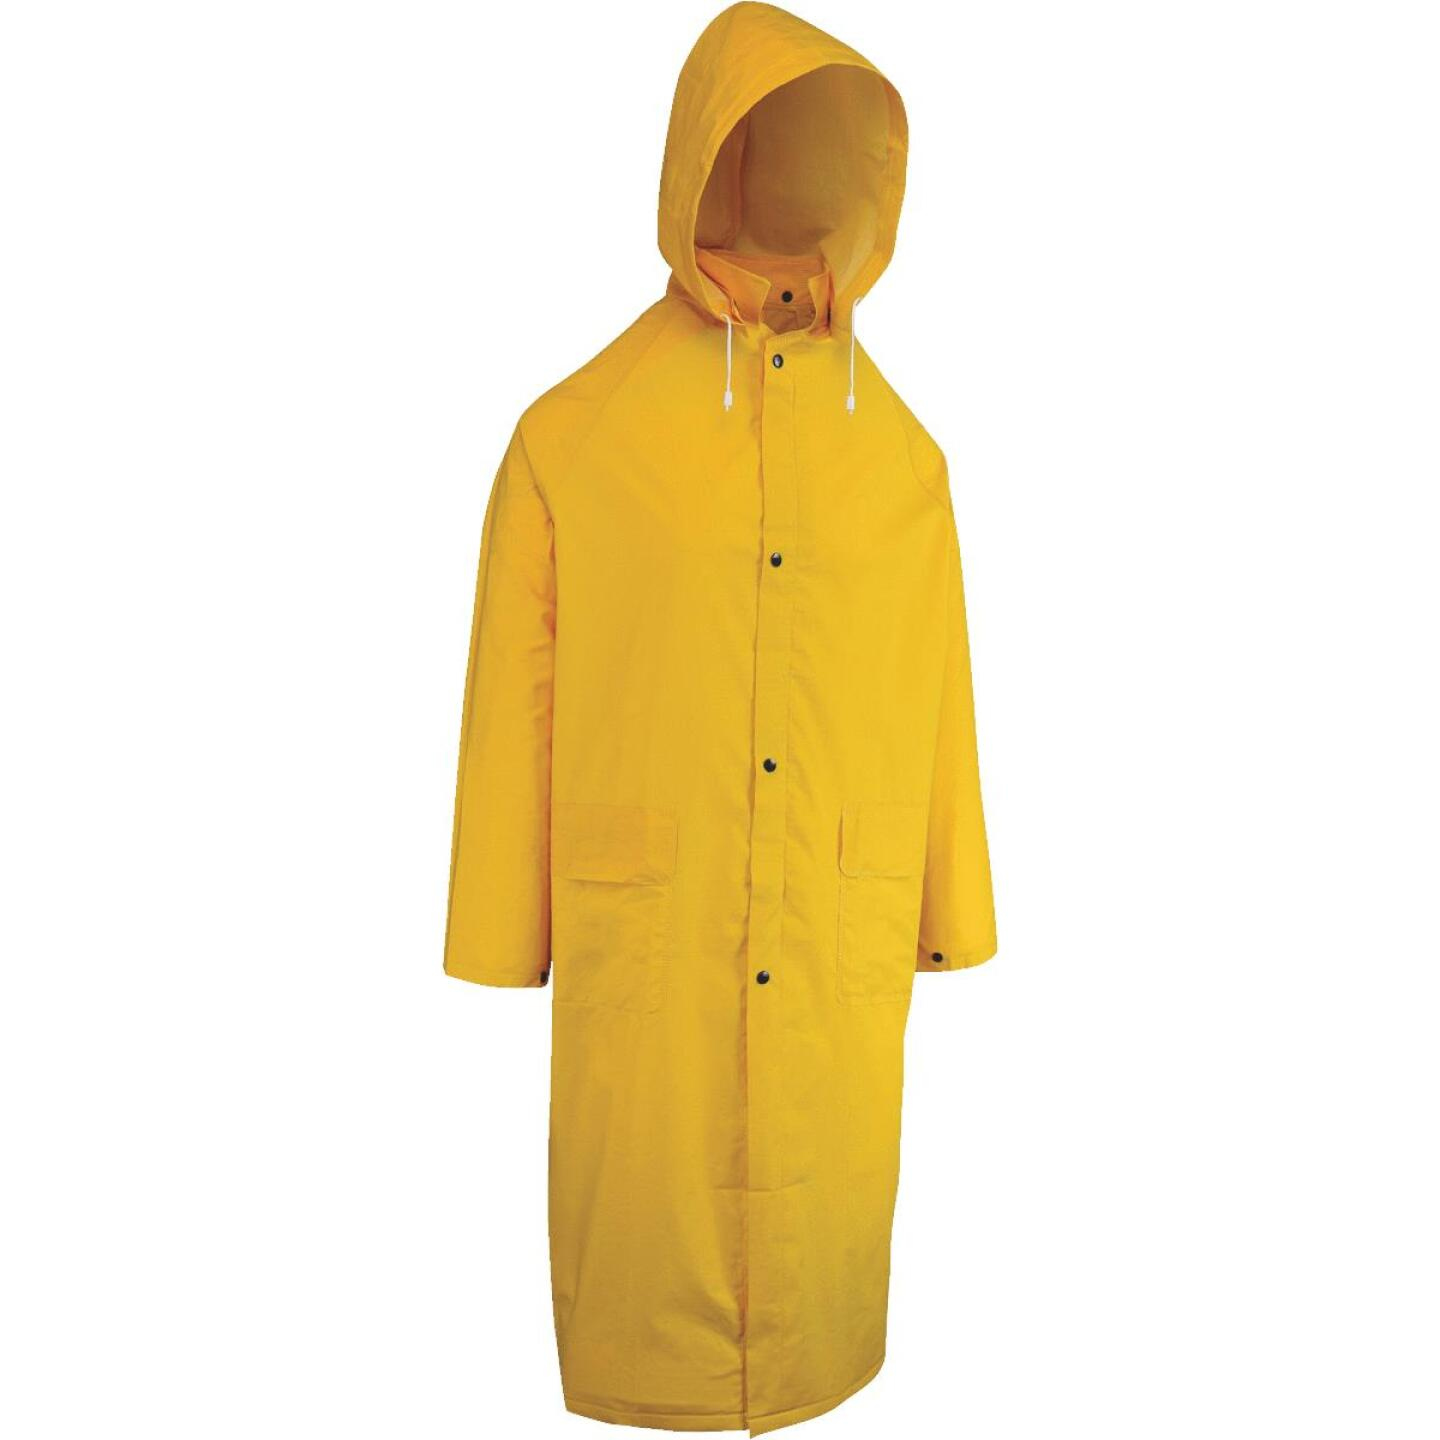 West Chester 2XL Safety Yellow PVC Raincoat Image 1